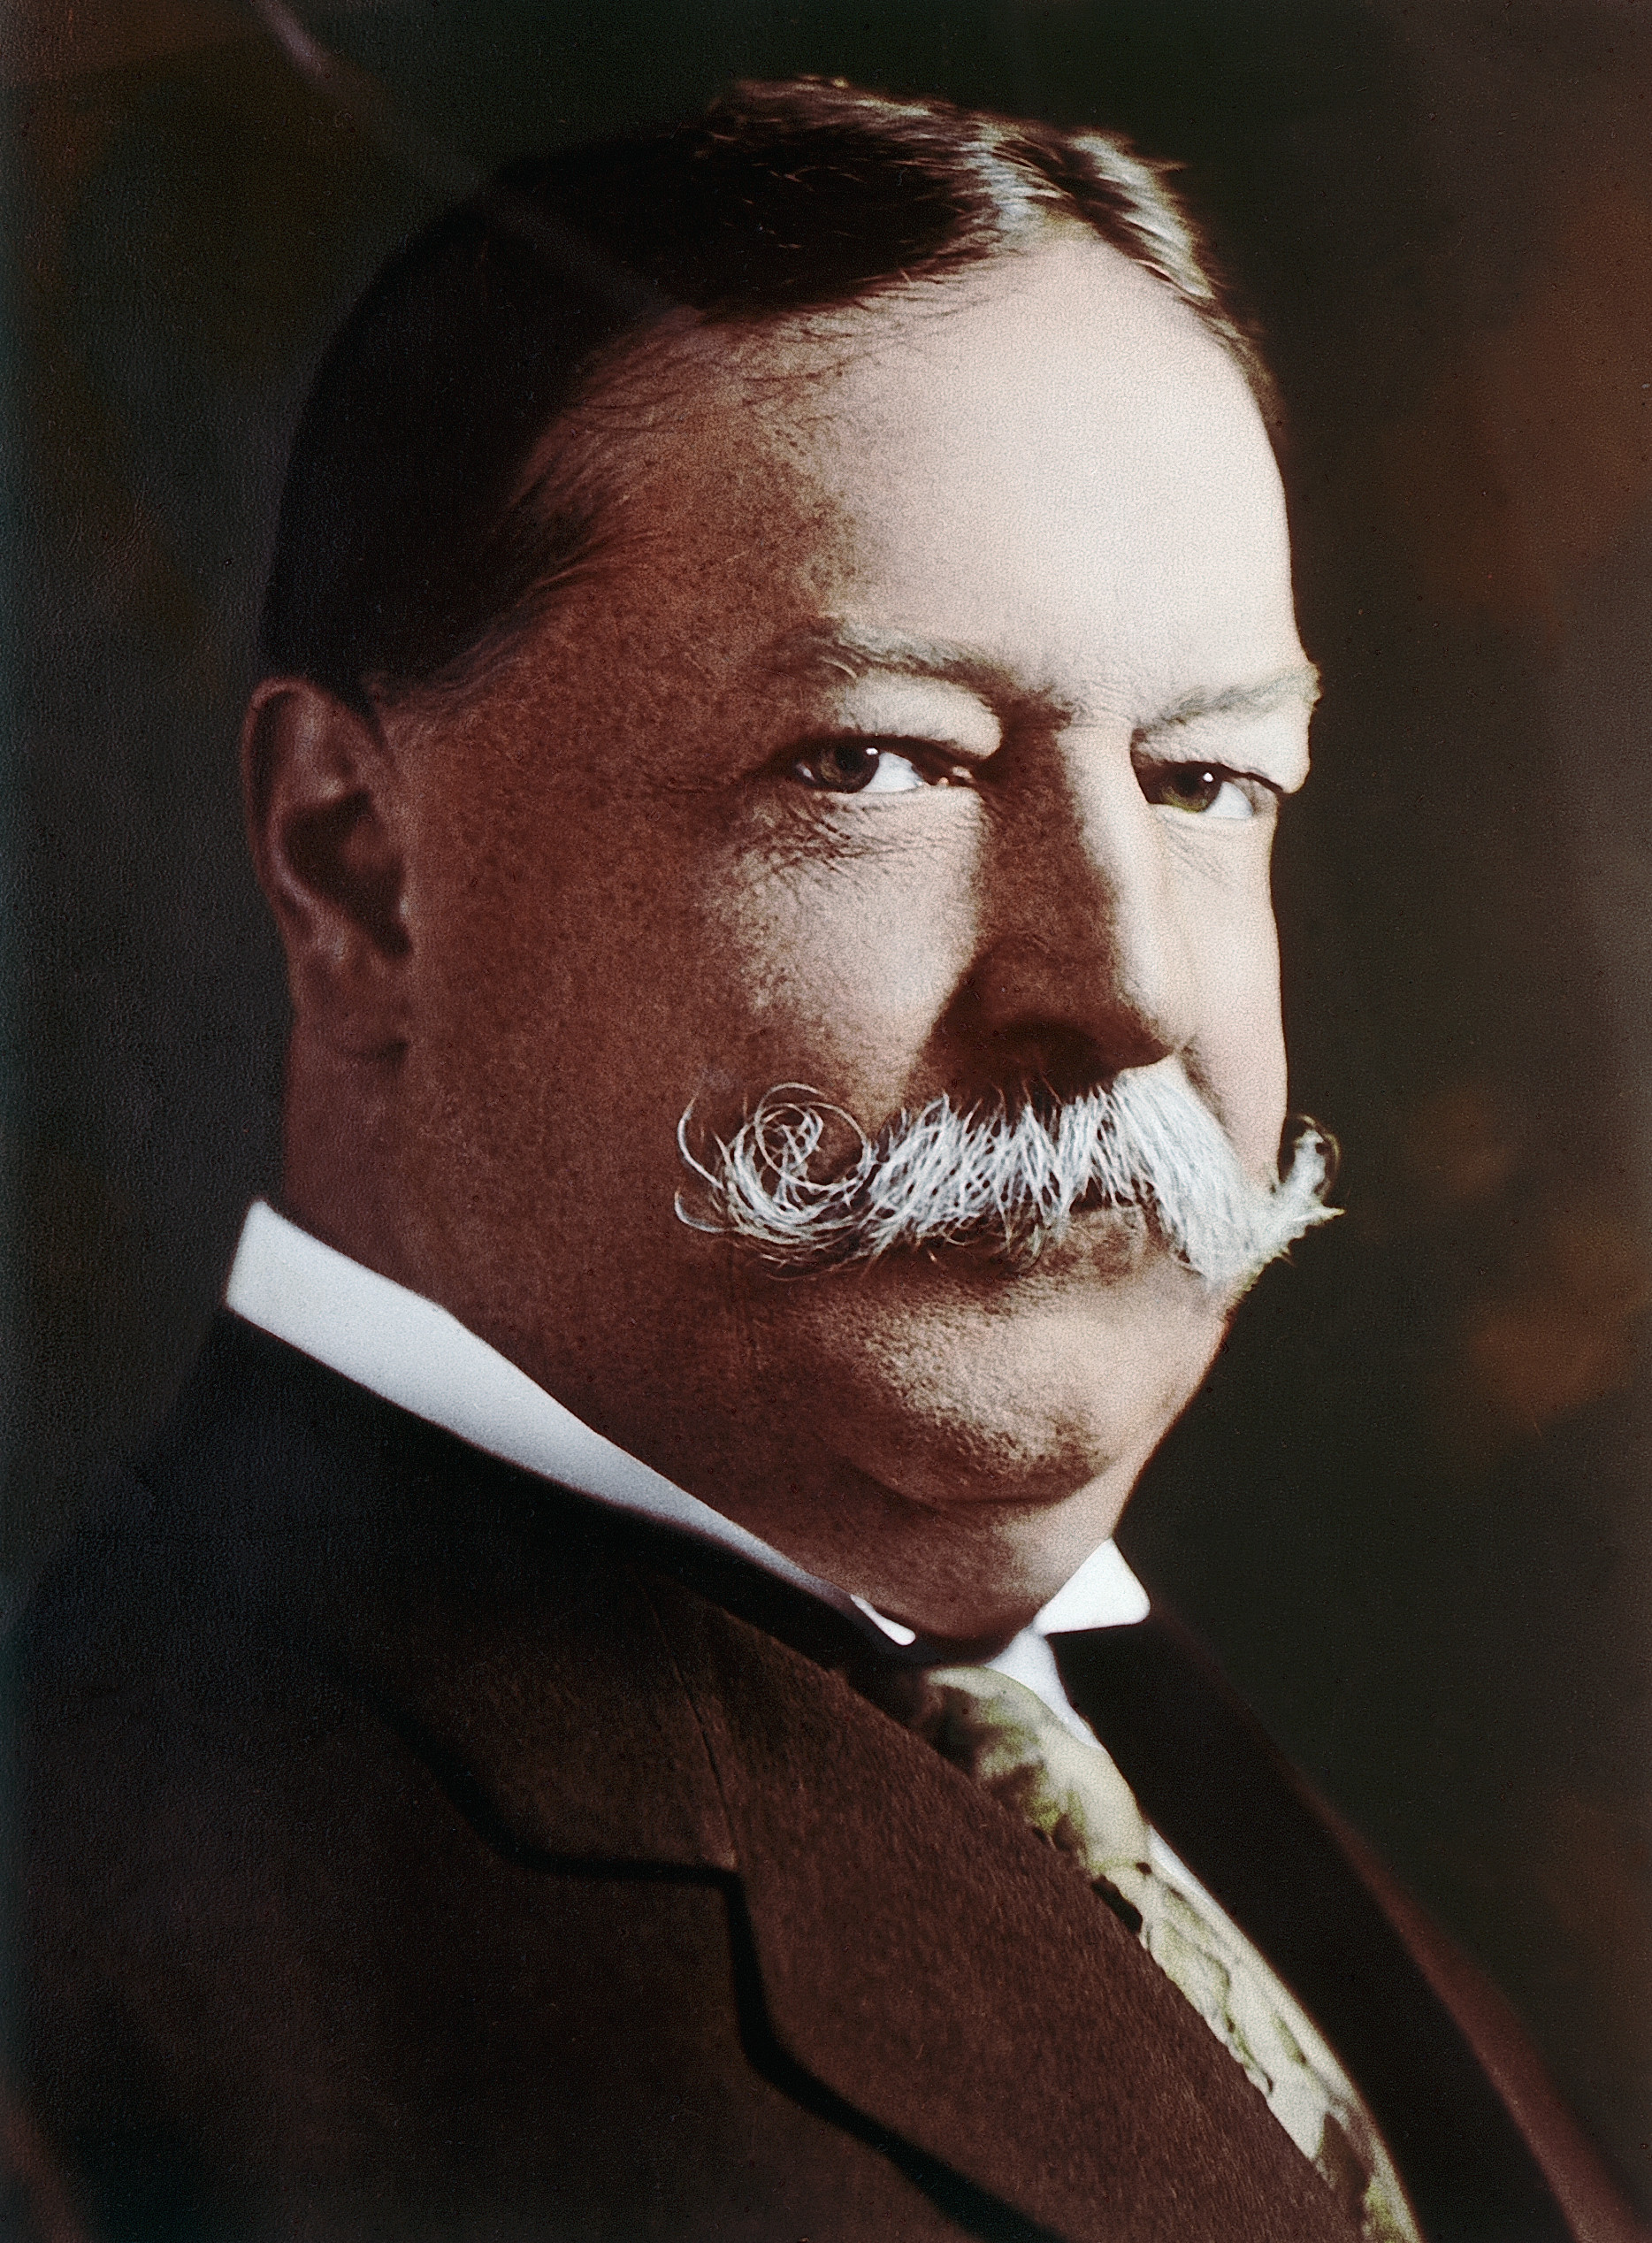 a biography of william howard taft This william howard taft mug is part of a collection of presidential biographical mugs and includes an image of william howard taft and a short biography.